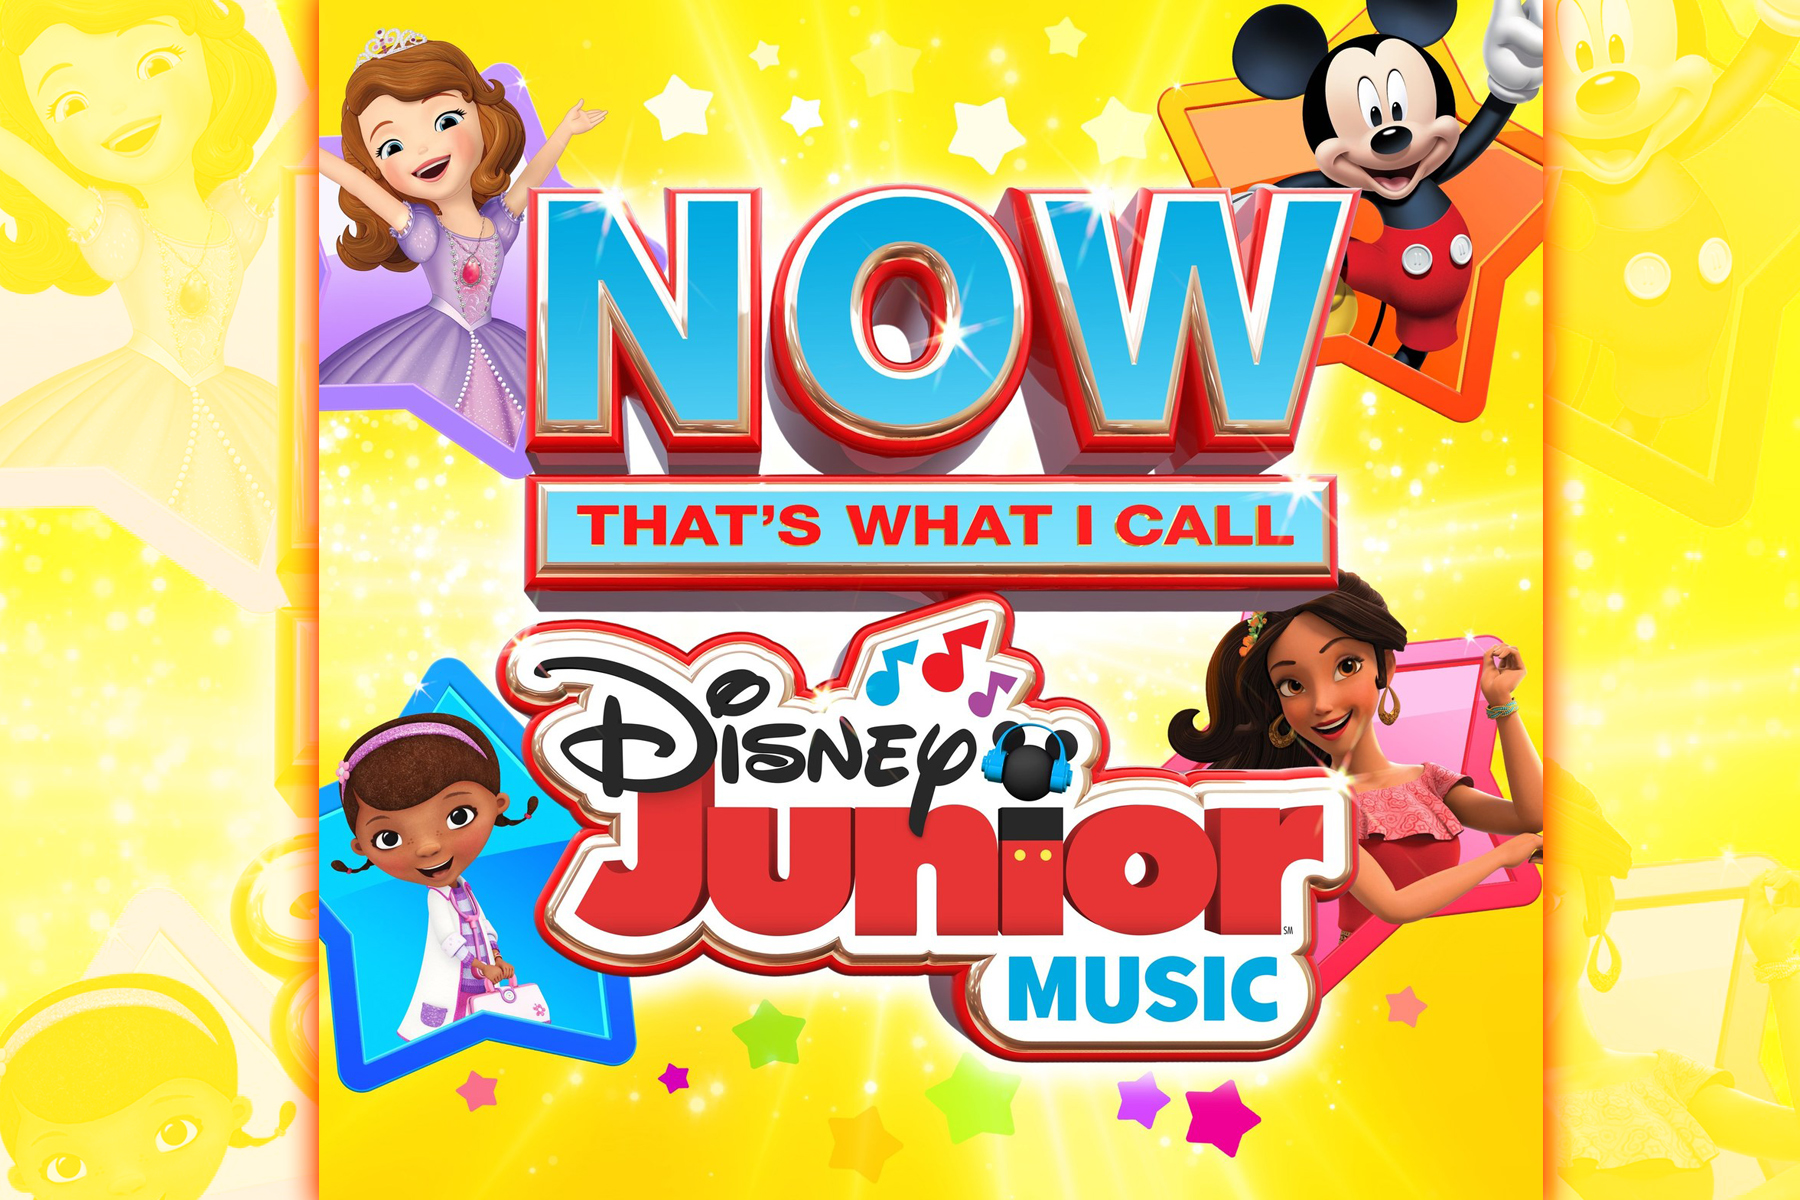 ALL NEW Collection Of Disney Music Favorites, 'Now That's What I Call Disney Junior Music'